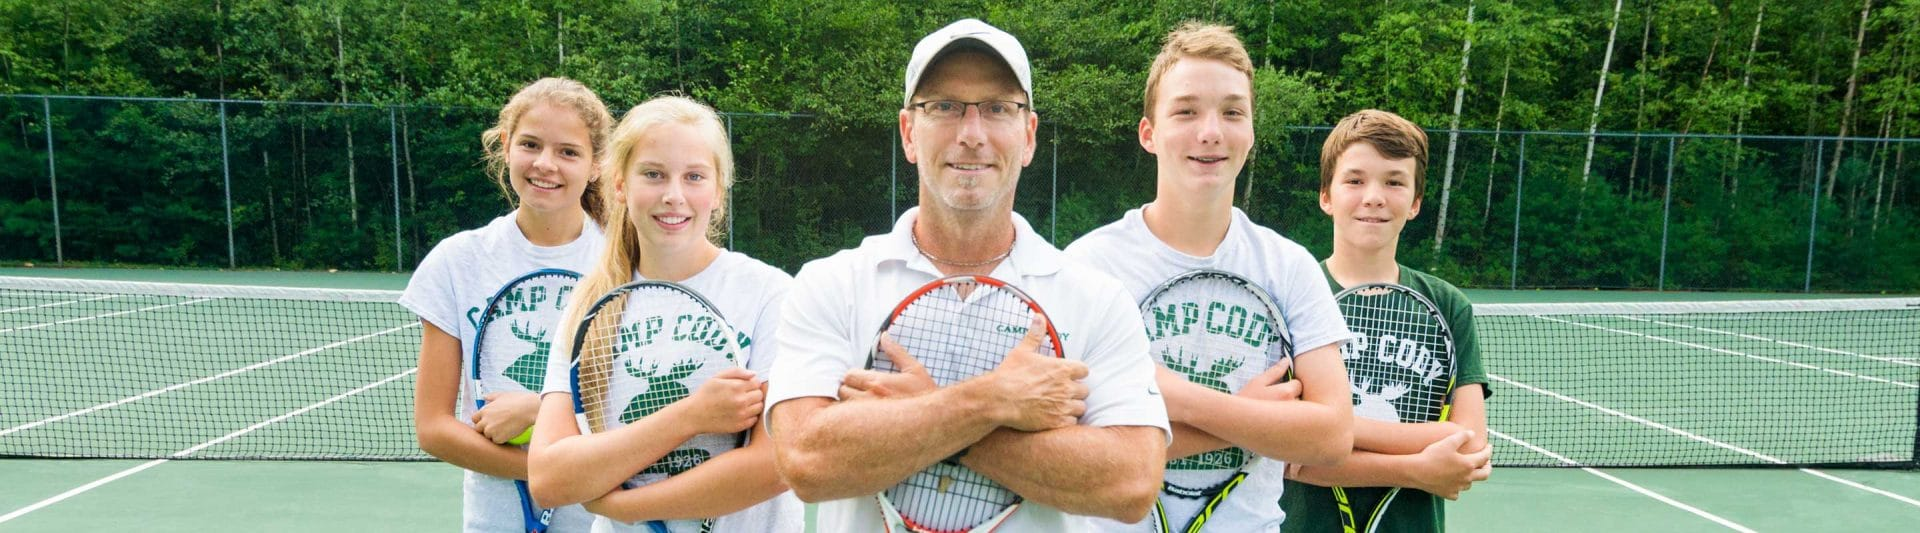 tennis coach and four players flanking him hugging their tennis rackets to their chests